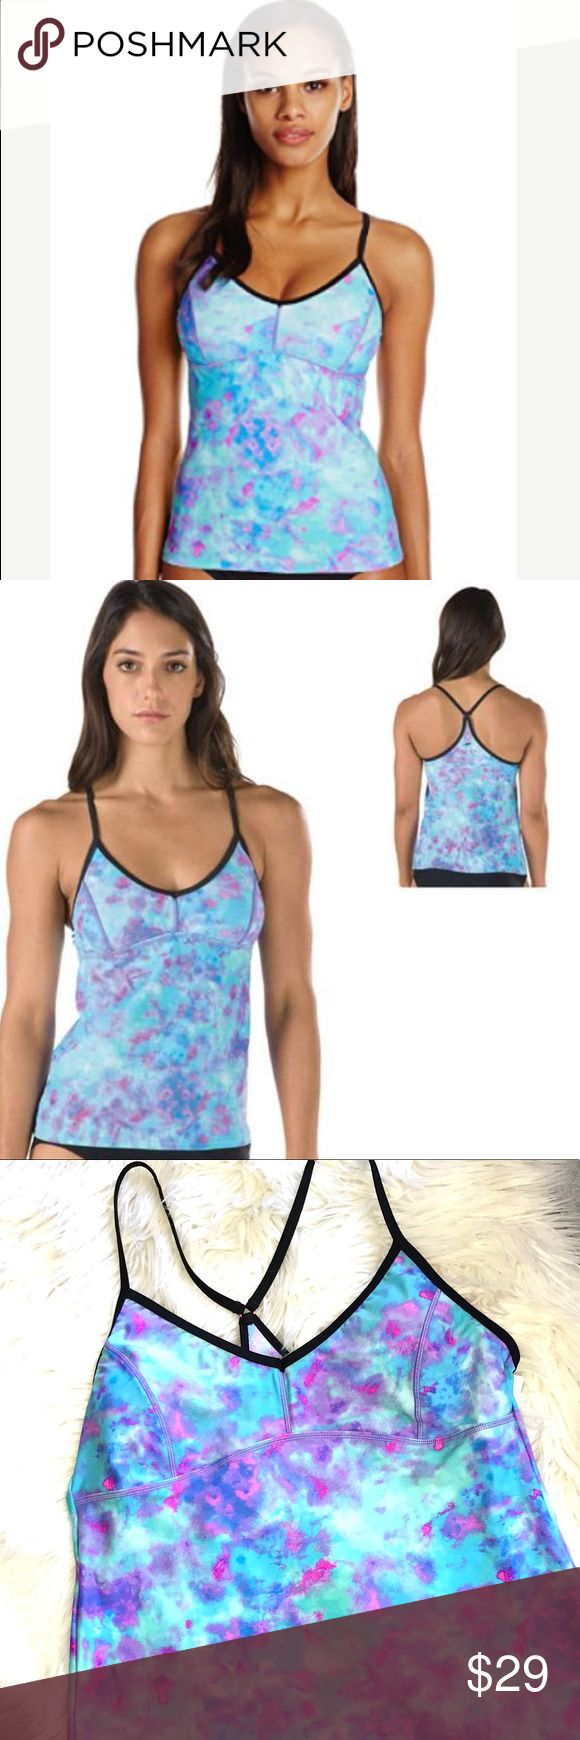 NWT Speedo Aqua Pink Purple Strappy Tankini New with tags watercolor print Tankini Swim Top in vibrant shades of Aqua Turquoise blue, pink & purple.   Black straps.  Lined and lightly padded bust.   Size Large.  Nylon/spandex blend. Speedo Swim